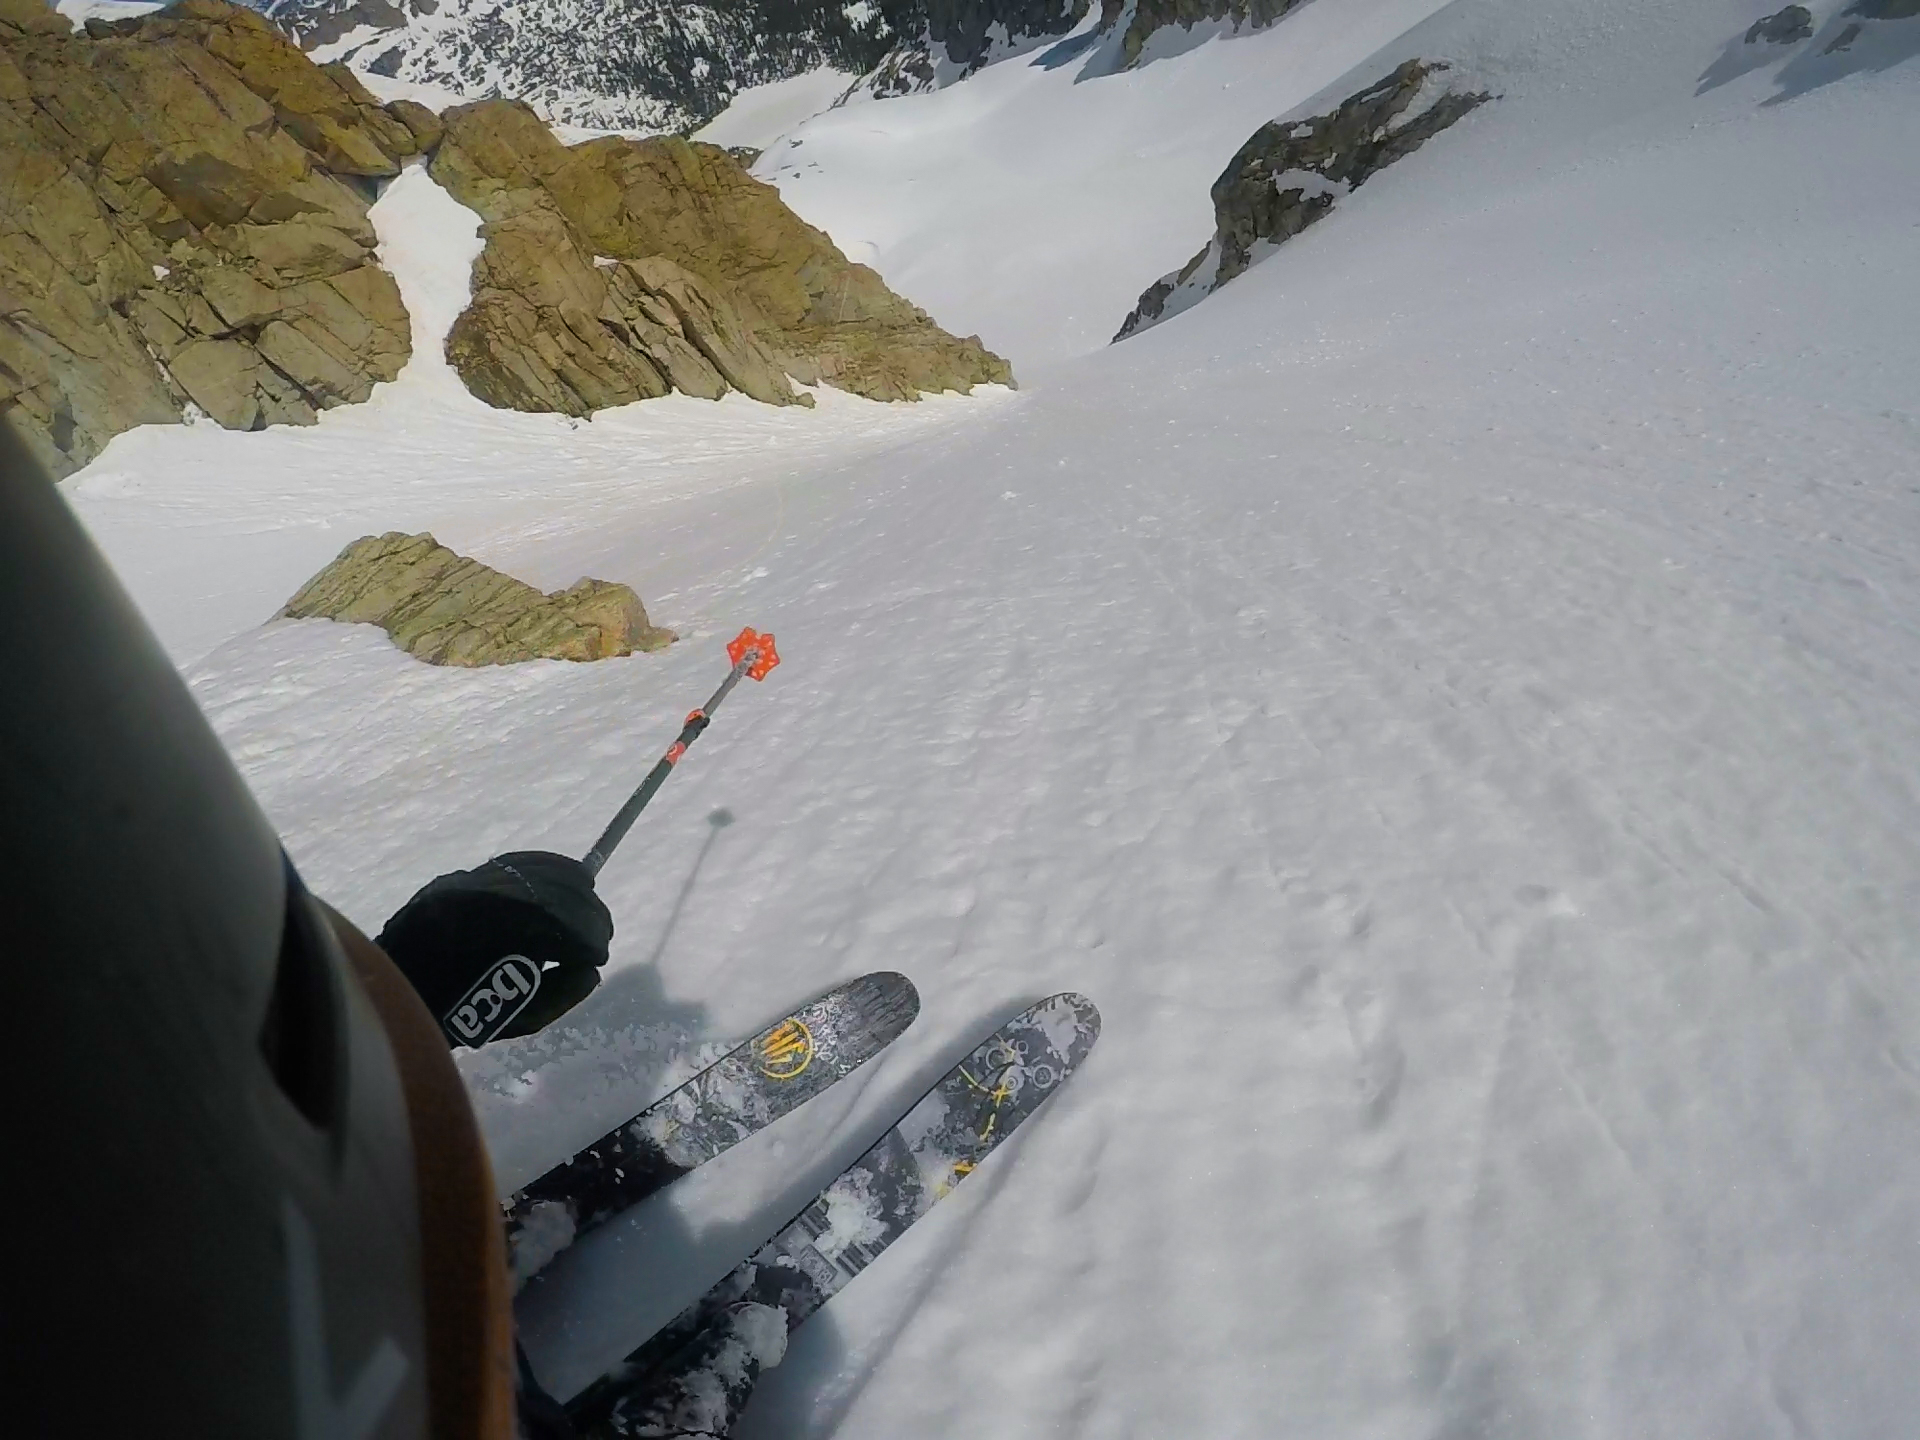 Skiing a choice line on the Peck Glacier.